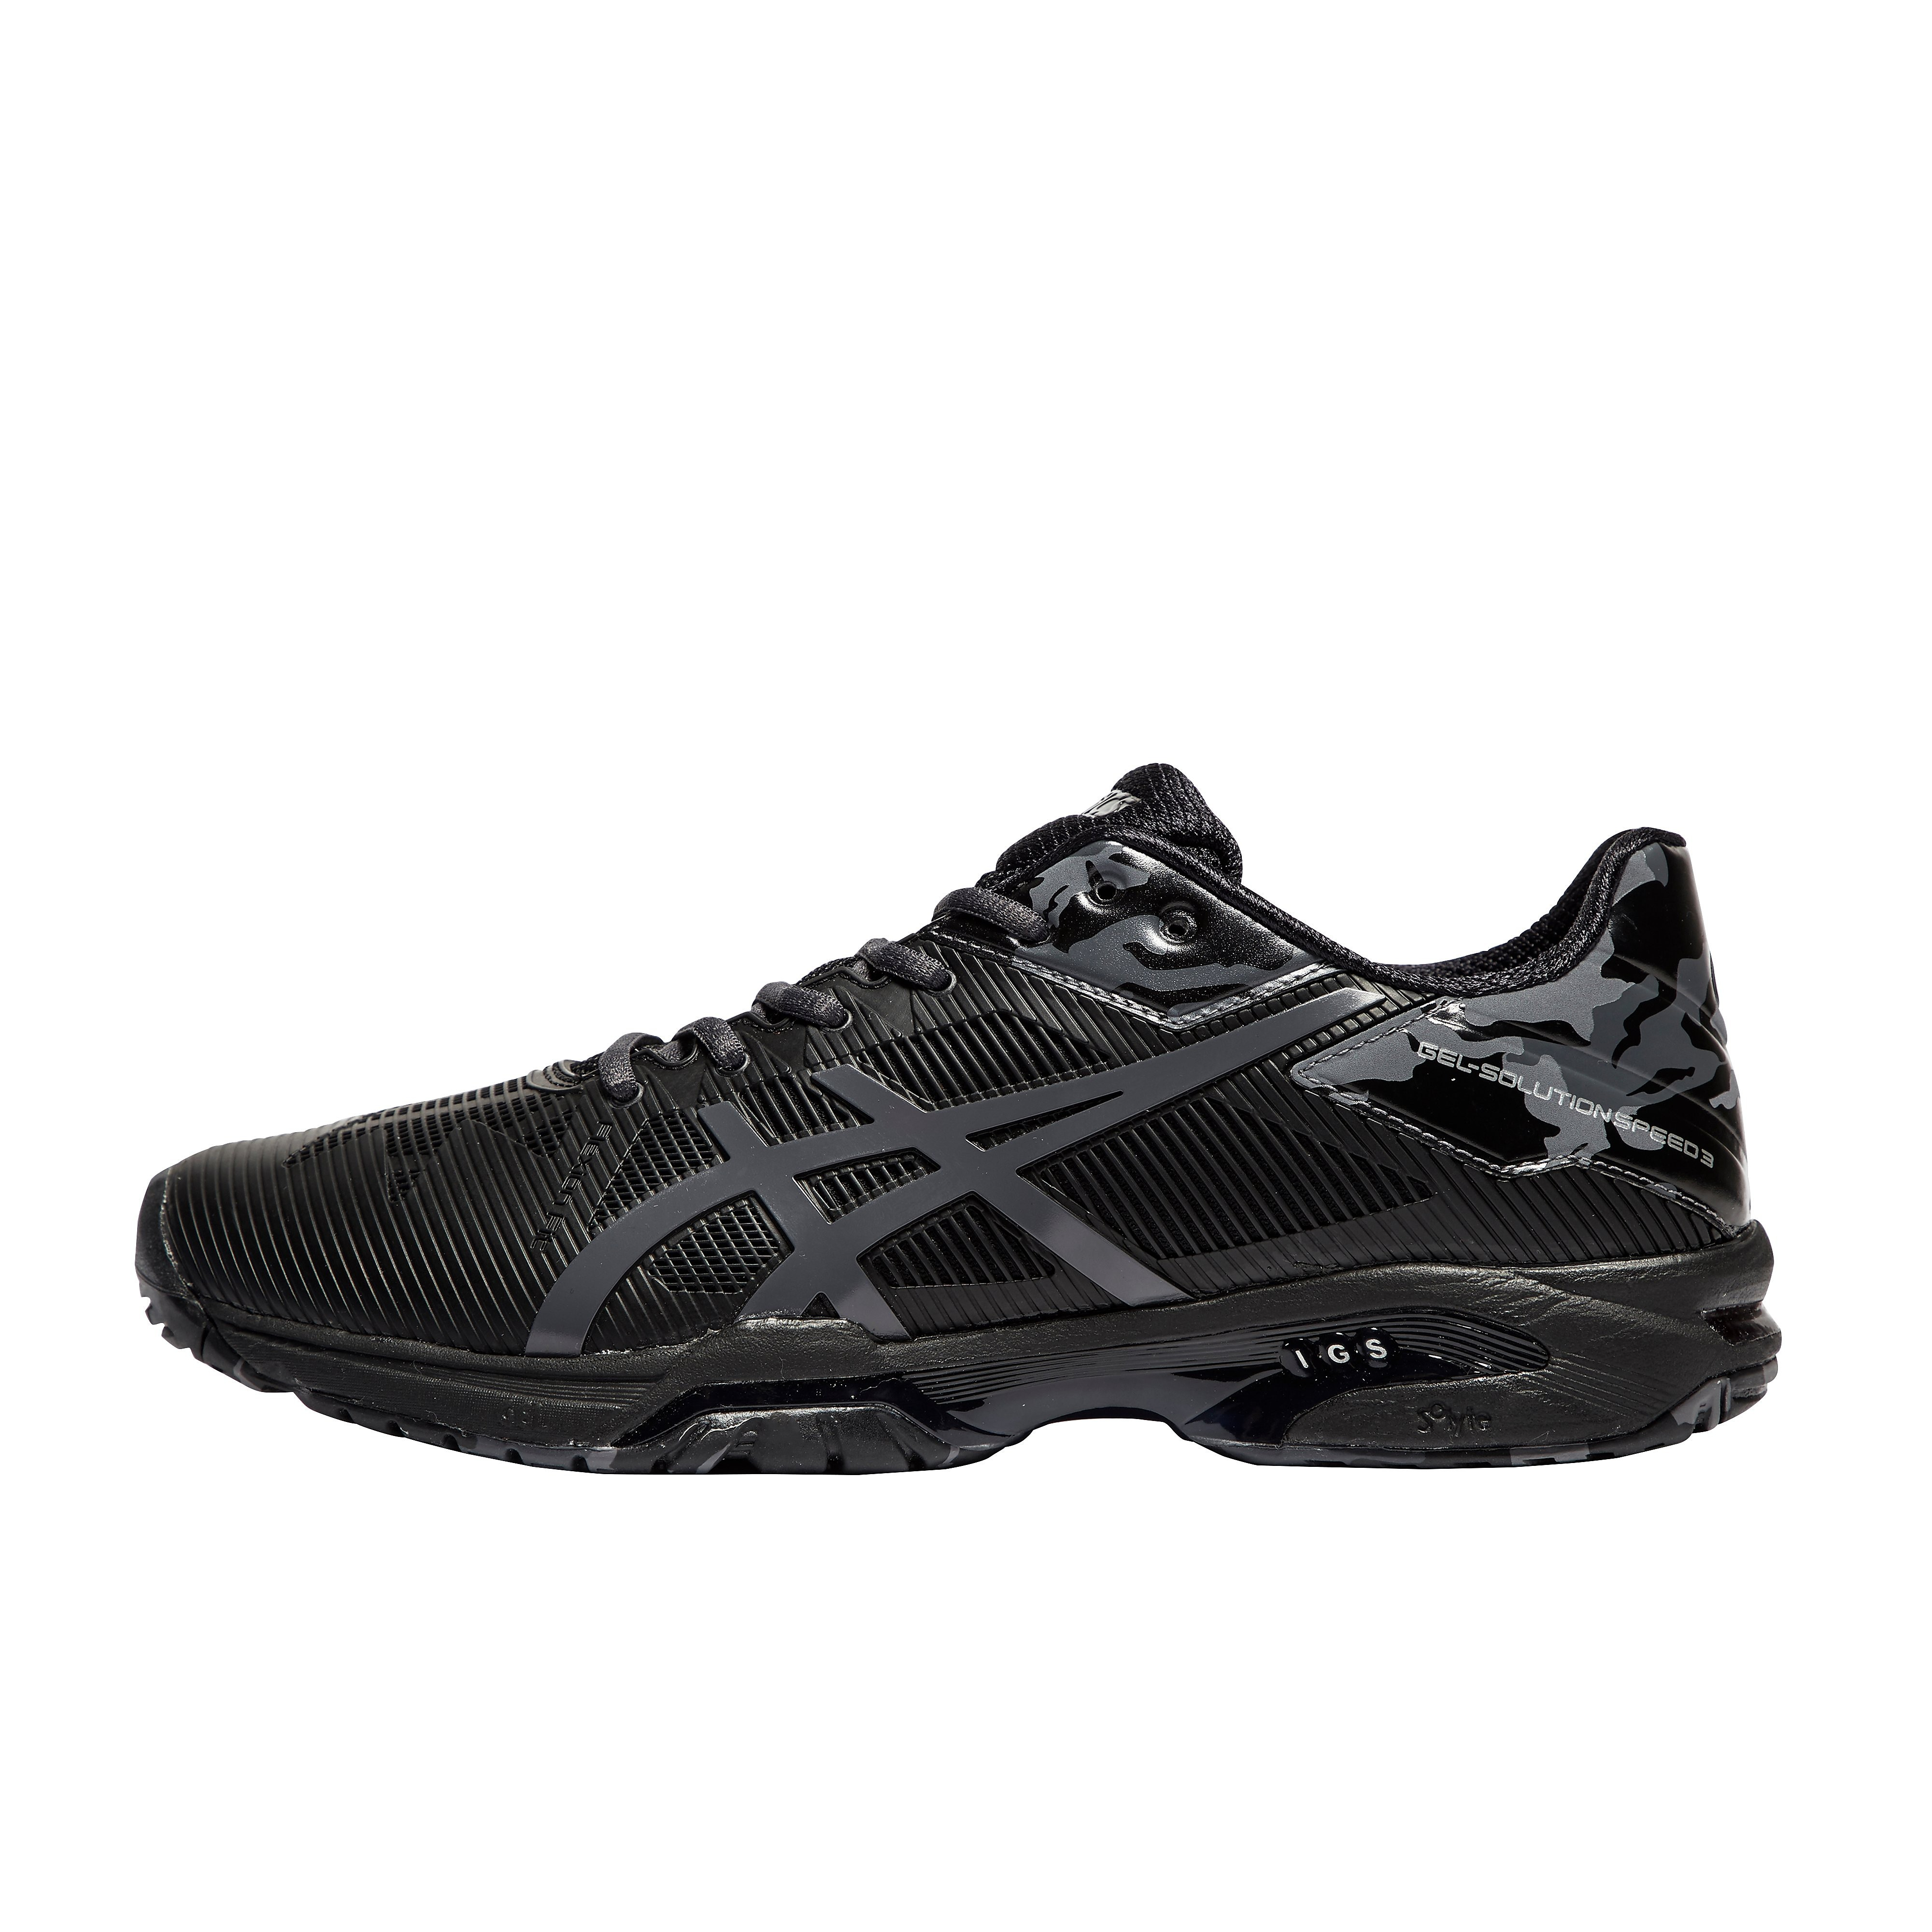 ASICS Gel-Solution Speed 3 L.E. Clay Men's Tennis Shoes